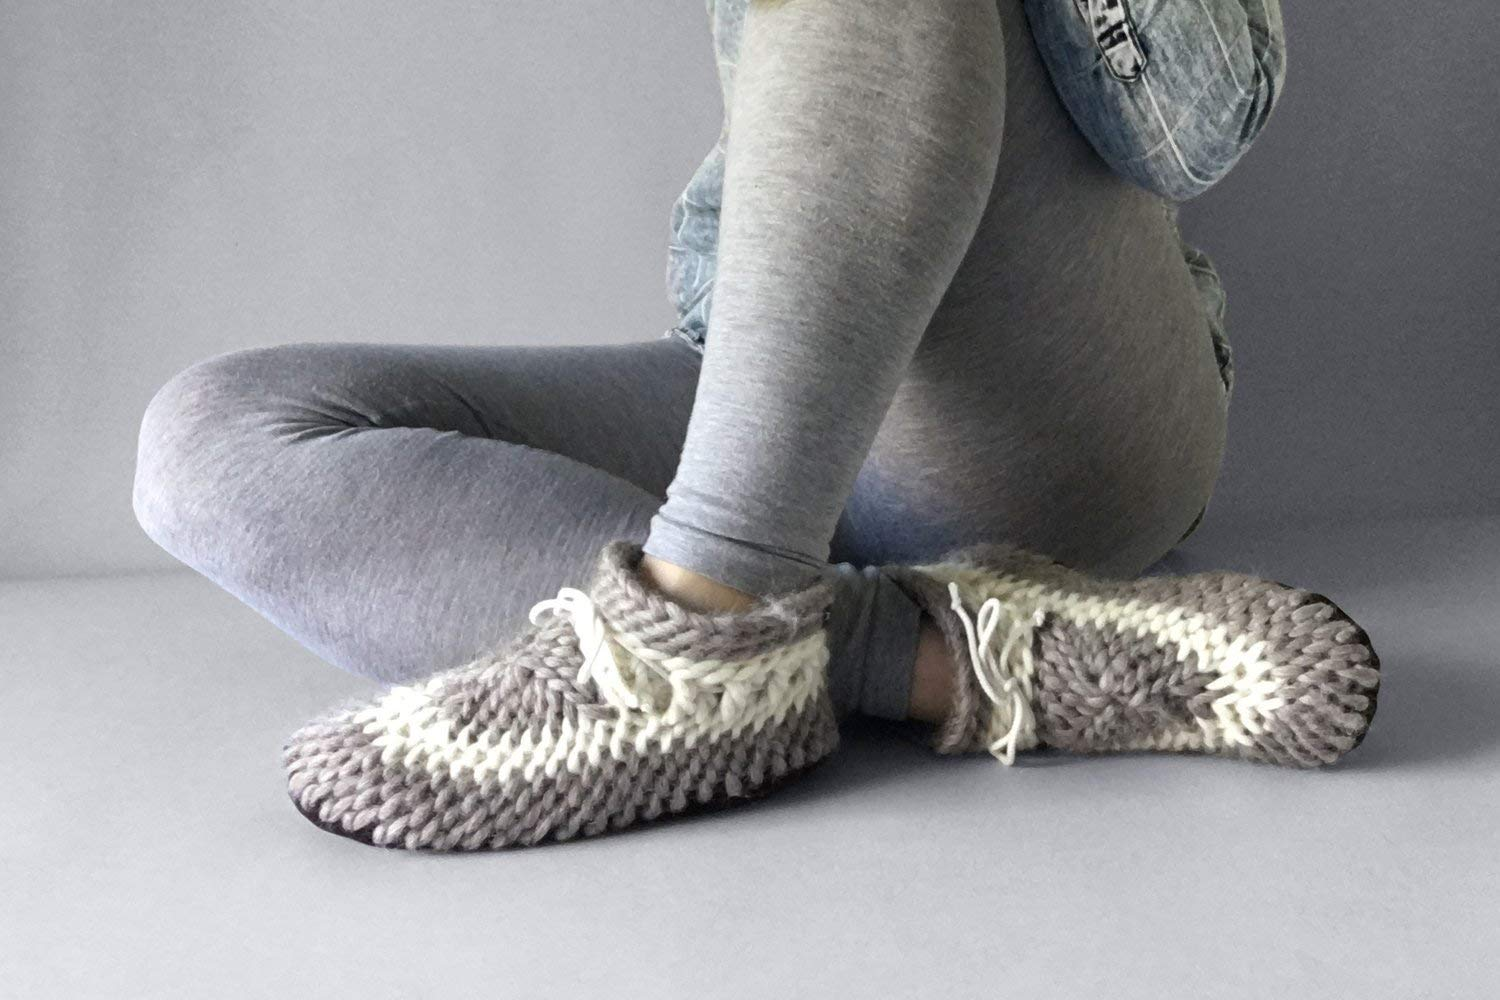 Muffle-Up! Classic Slipper Oatmeal - Womens Slippers, Warm Slippers, Mens Slippers, Knit Slippers, Woolen Slippers, Cozy Slippers, Women House Shoes